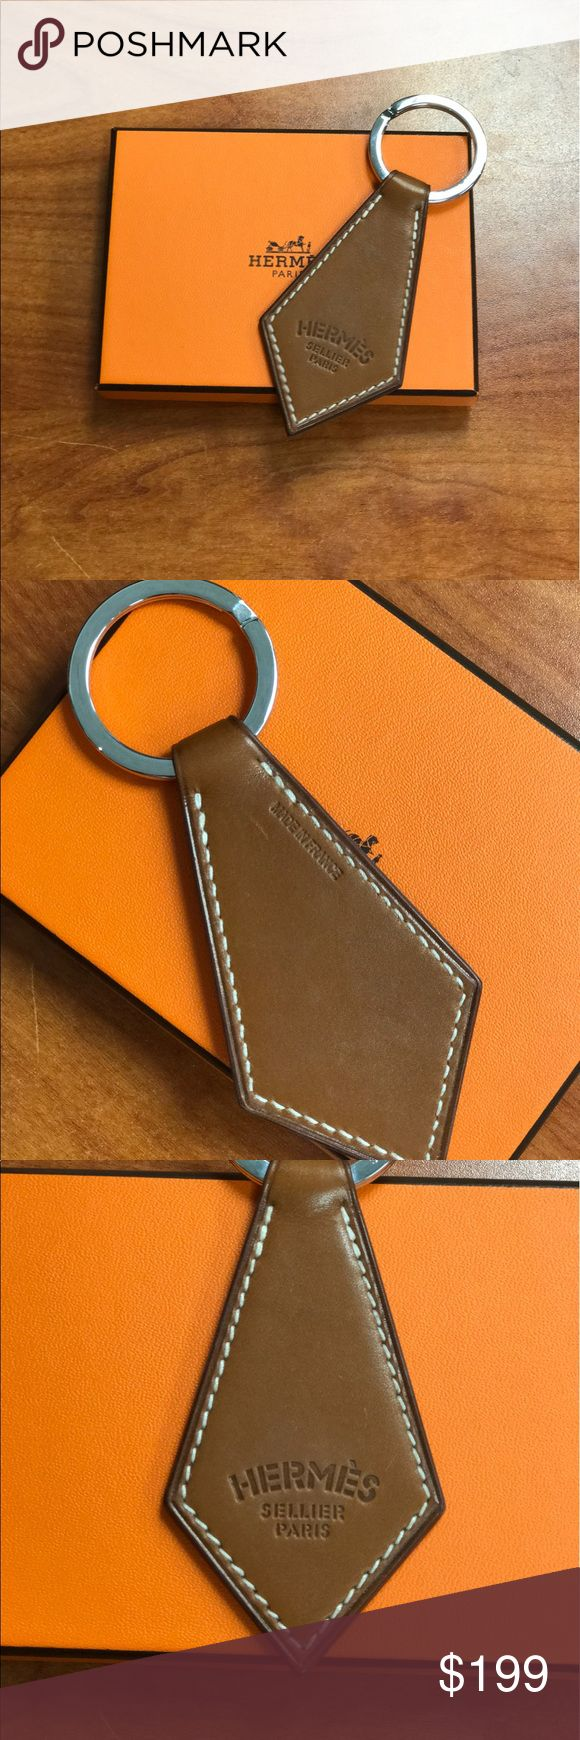 "Hermes Tab Key Ring Hermes Tie shape Tab Key Ring in Swift calfskin with ""Hermes Sellier Paris"" print. This item is in excellent/pristine condition. Comes with original box. Hermes Accessories Key & Card Holders"